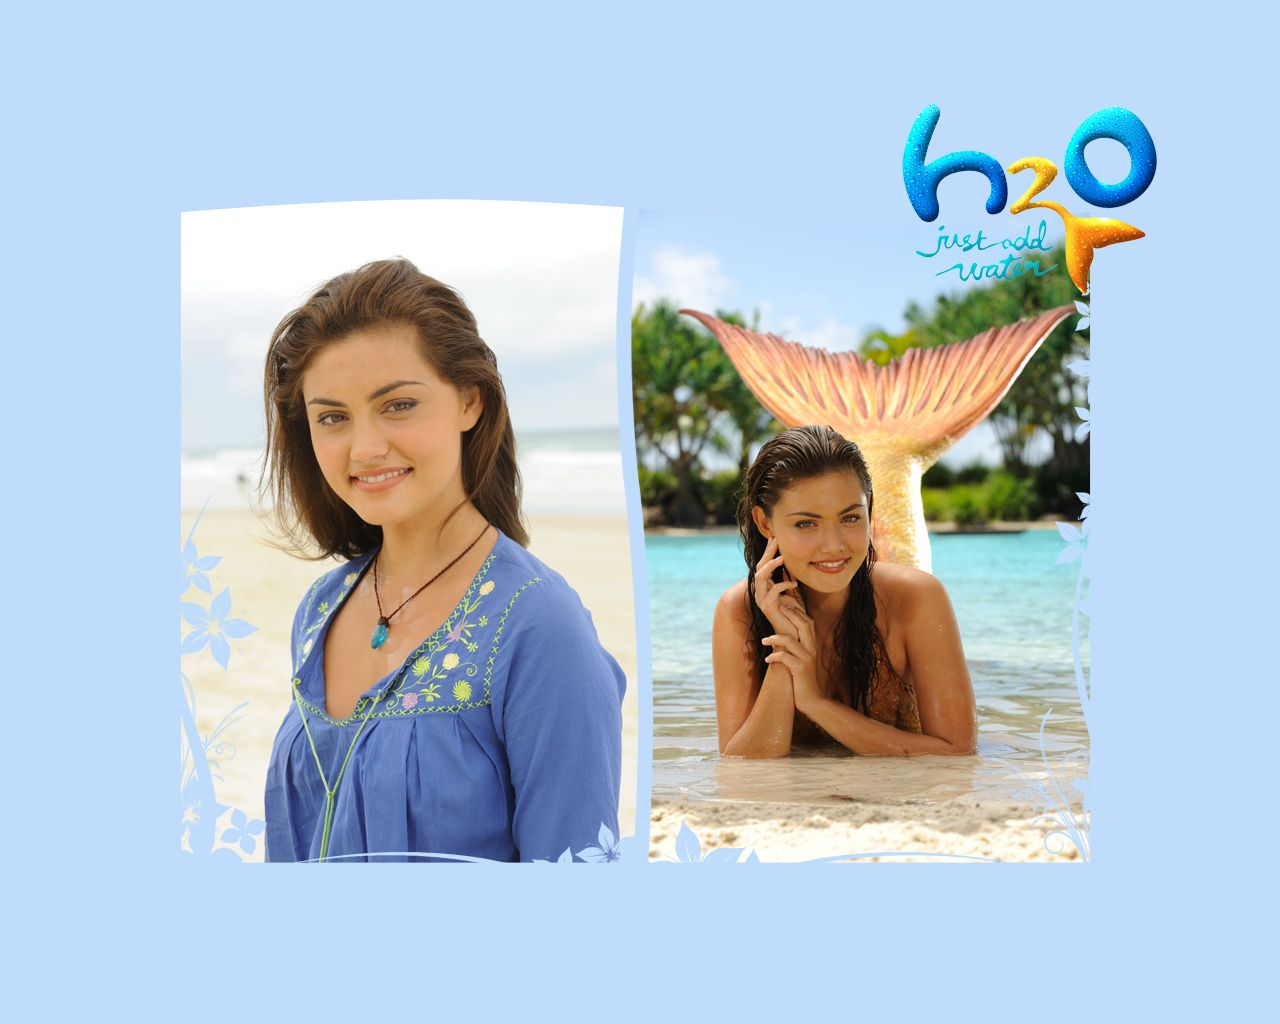 H2o just add water cleo h2o just add water wallpaper for H2o episodes season 4